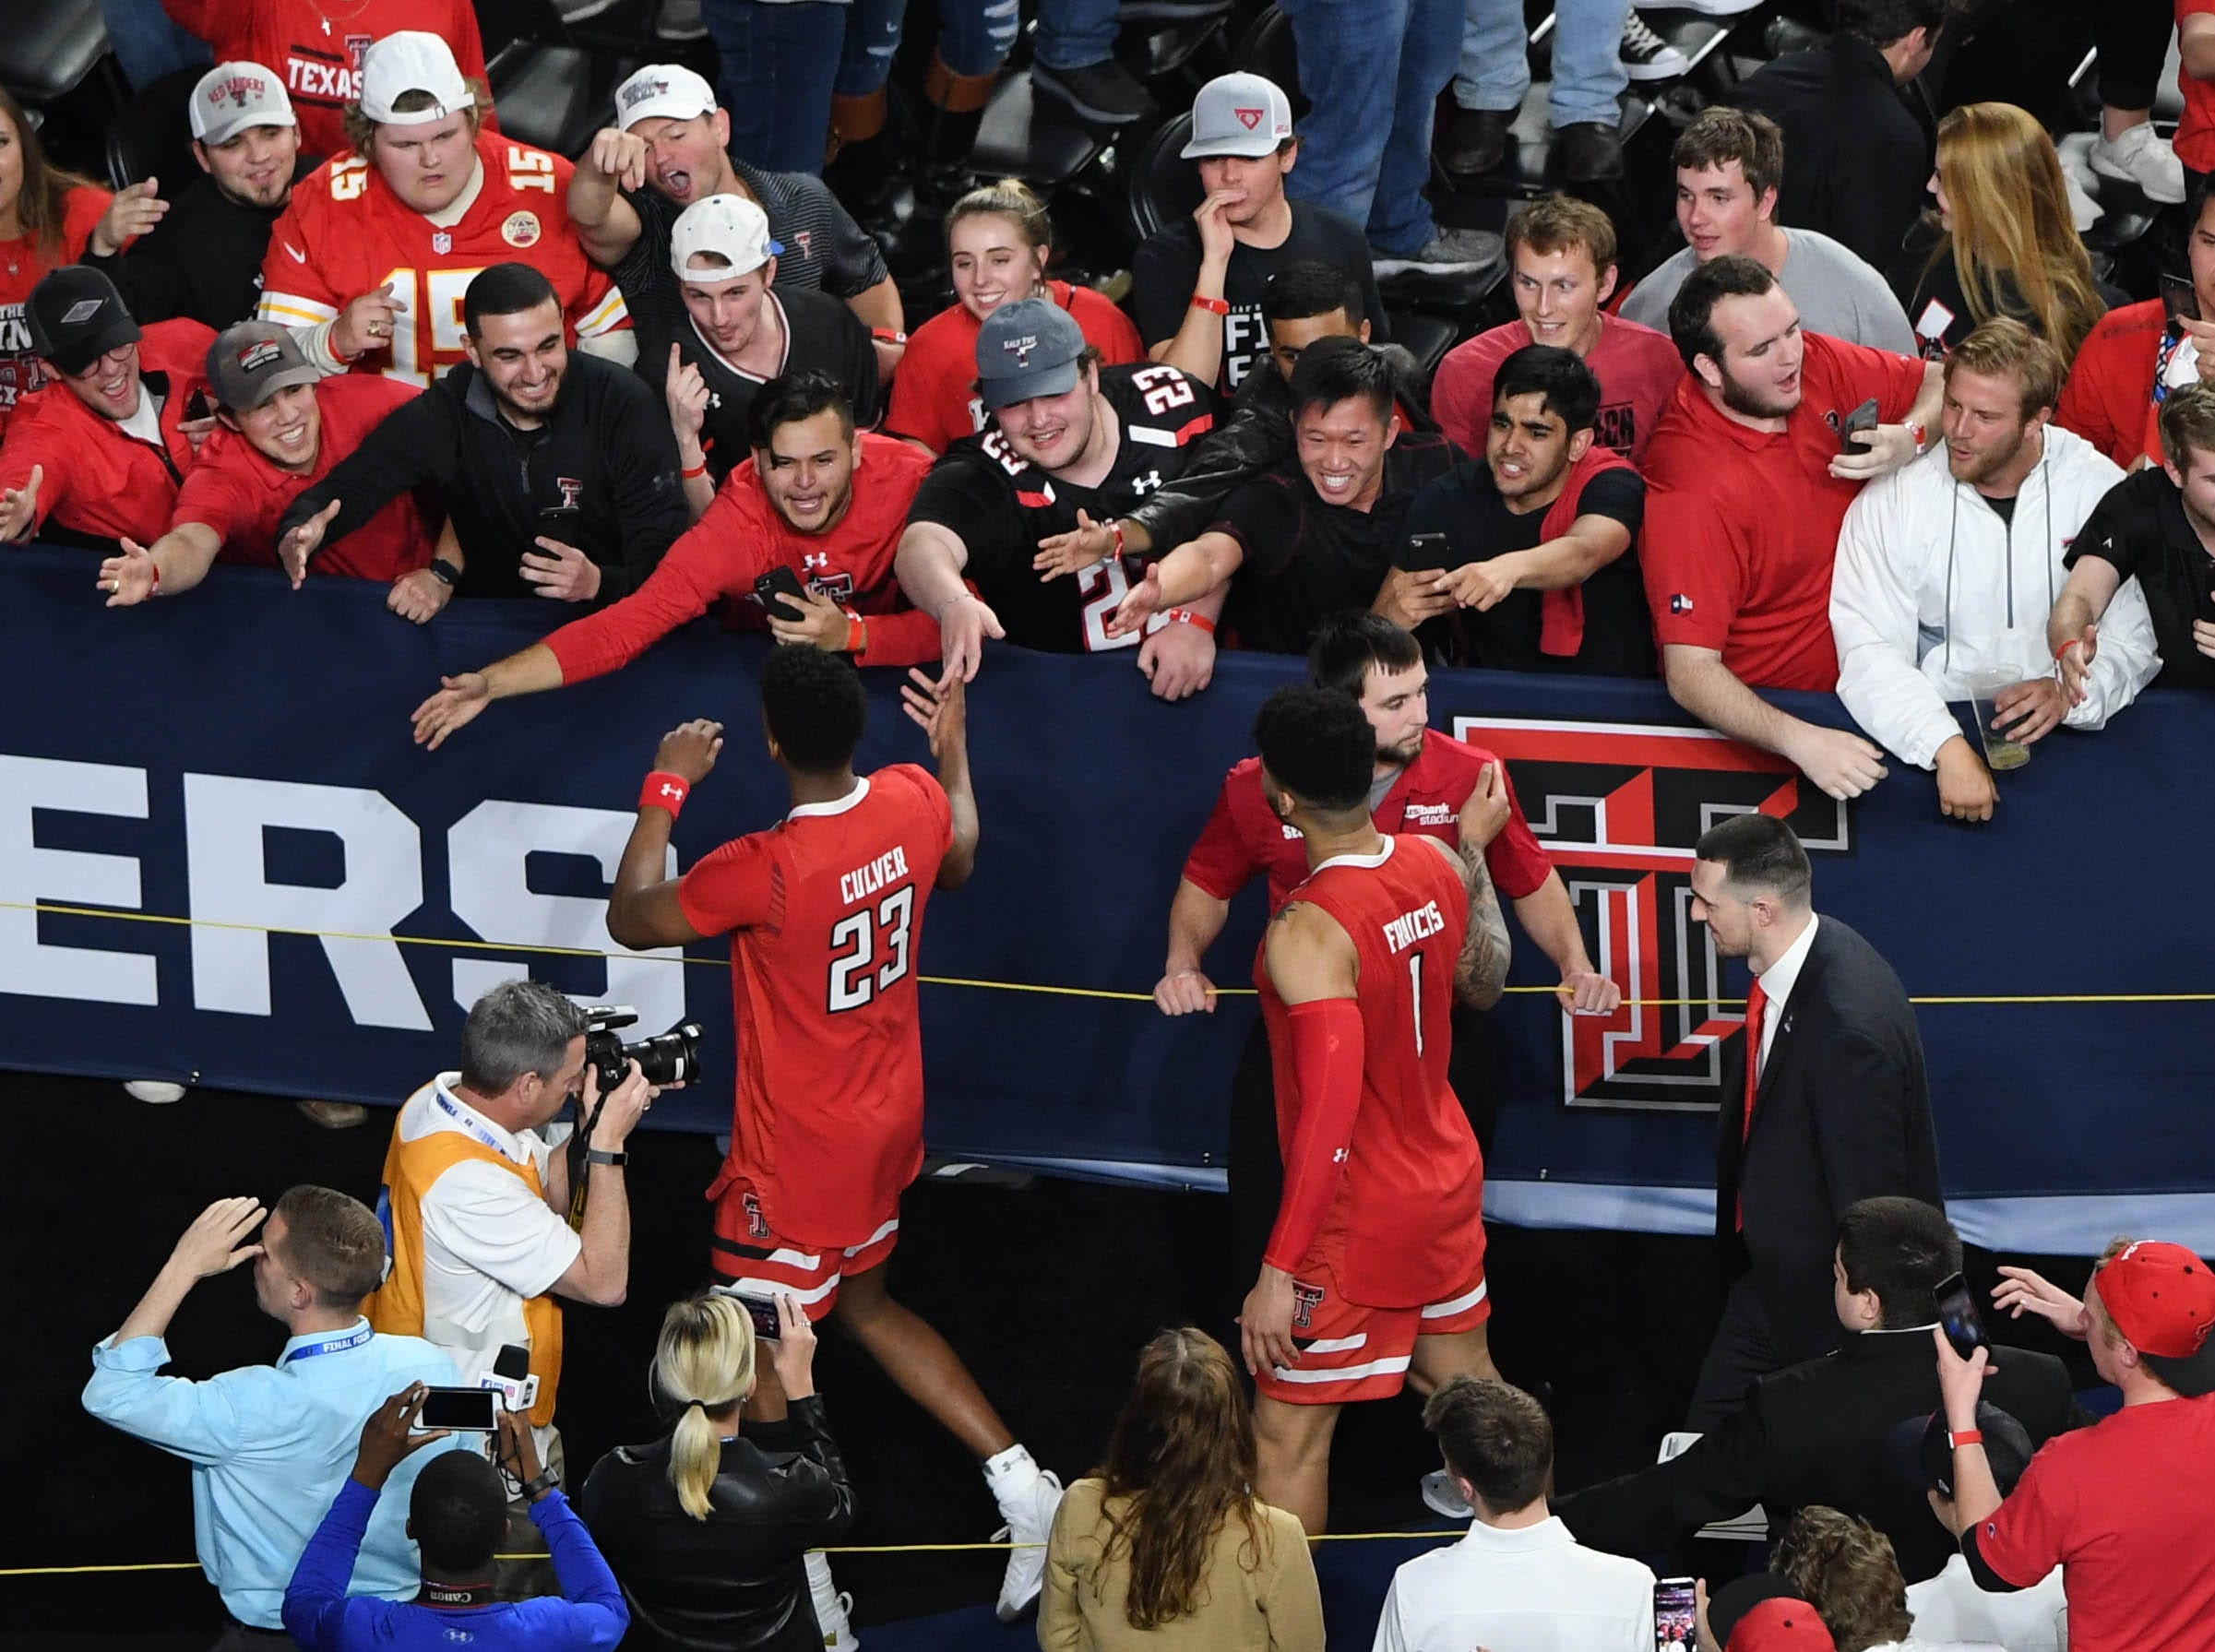 Apr 6, 2019; Minneapolis, MN, USA;Texas Tech Red Raiders guard Jarrett Culver (23) and guard Brandone Francis (1) greet fans after defeating the Michigan State Spartans in the semifinals of the 2019 men's Final Four at US Bank Stadium. Mandatory Credit: Shanna Lockwood-USA TODAY Sports